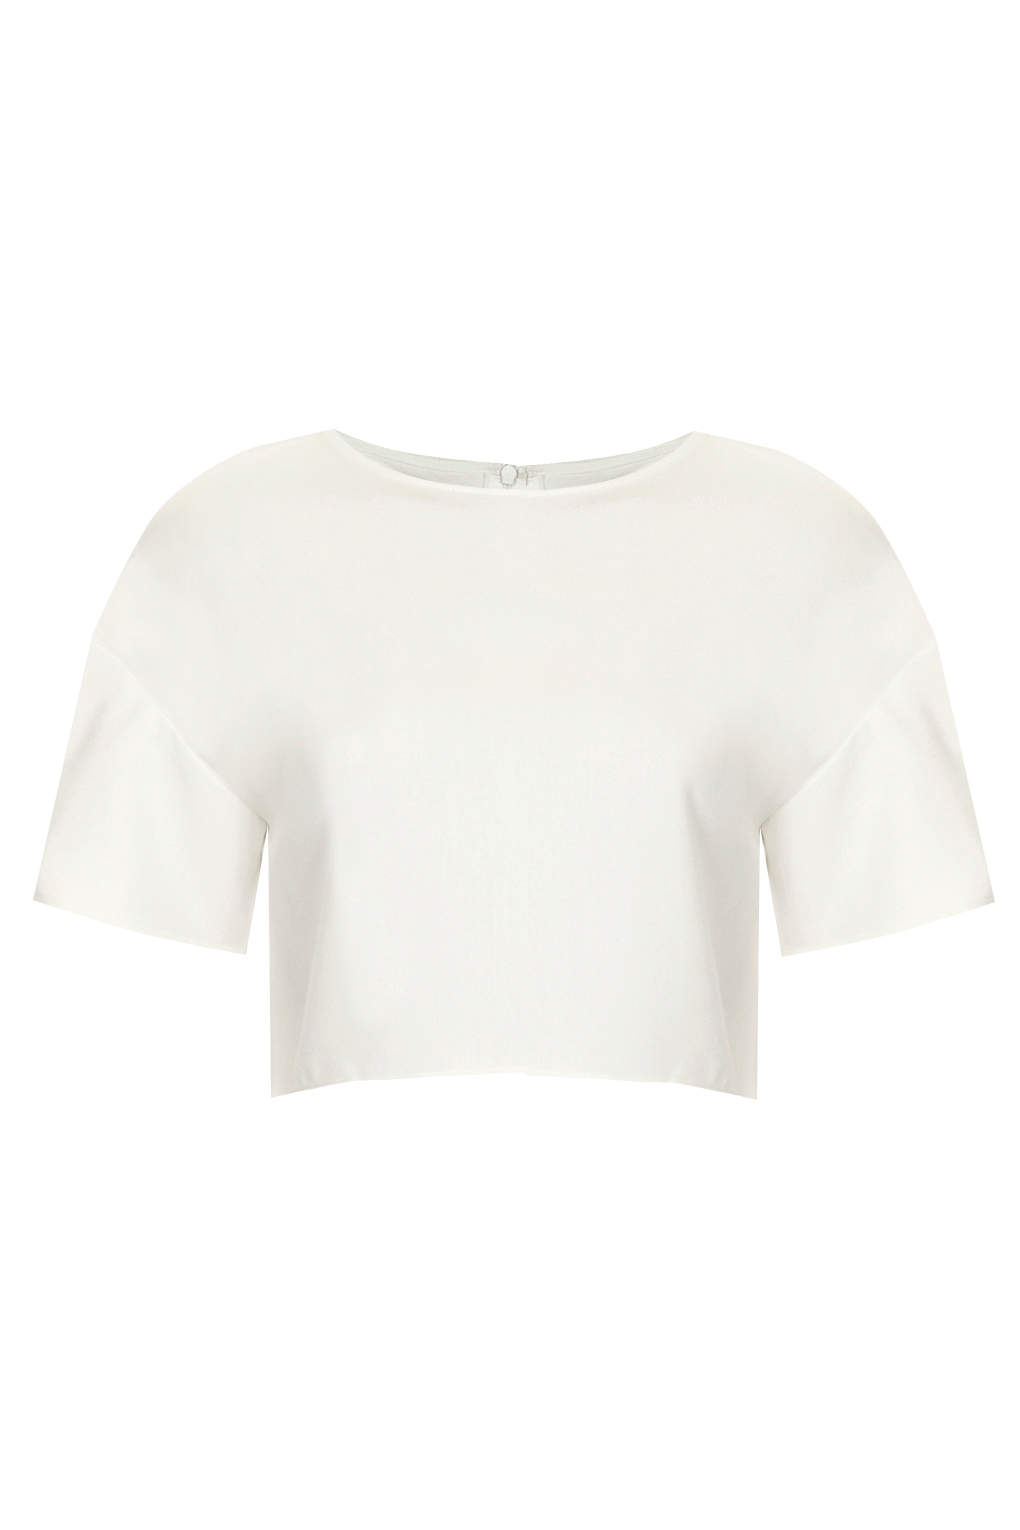 **Boxy Crop Top by The White Pepper